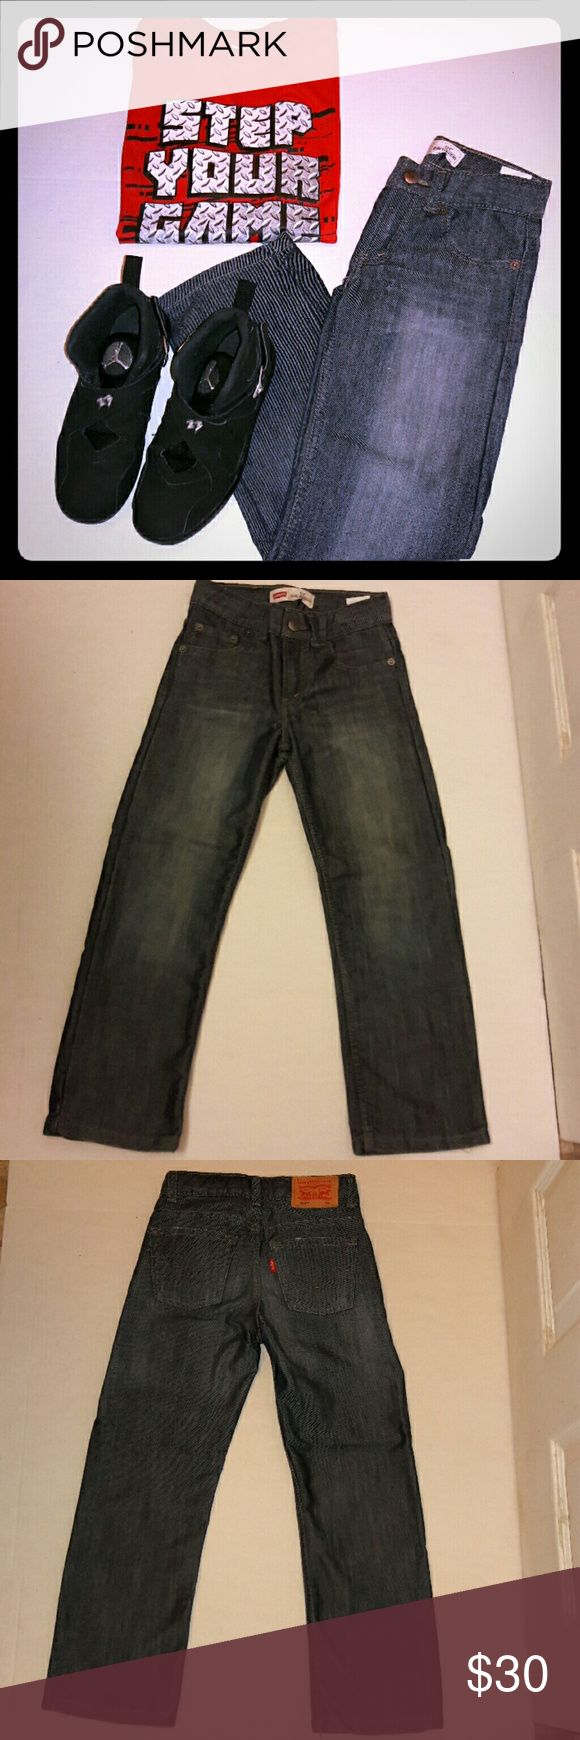 Levis 514 Boys Jeans PERFECT CONDITION...Levis 514 long pant jeans...they have the signature 5 pockets..are a slim straight fit..zipper and bottom closure..maybe worn once..I don't even think that..my son grew to quick!..Slight fades that where purchased that way...Some pictures show zigzag that's not there..Any questions please ask! Purchased at Macy's..Great for the little guy in your life :) Levi's Bottoms Jeans